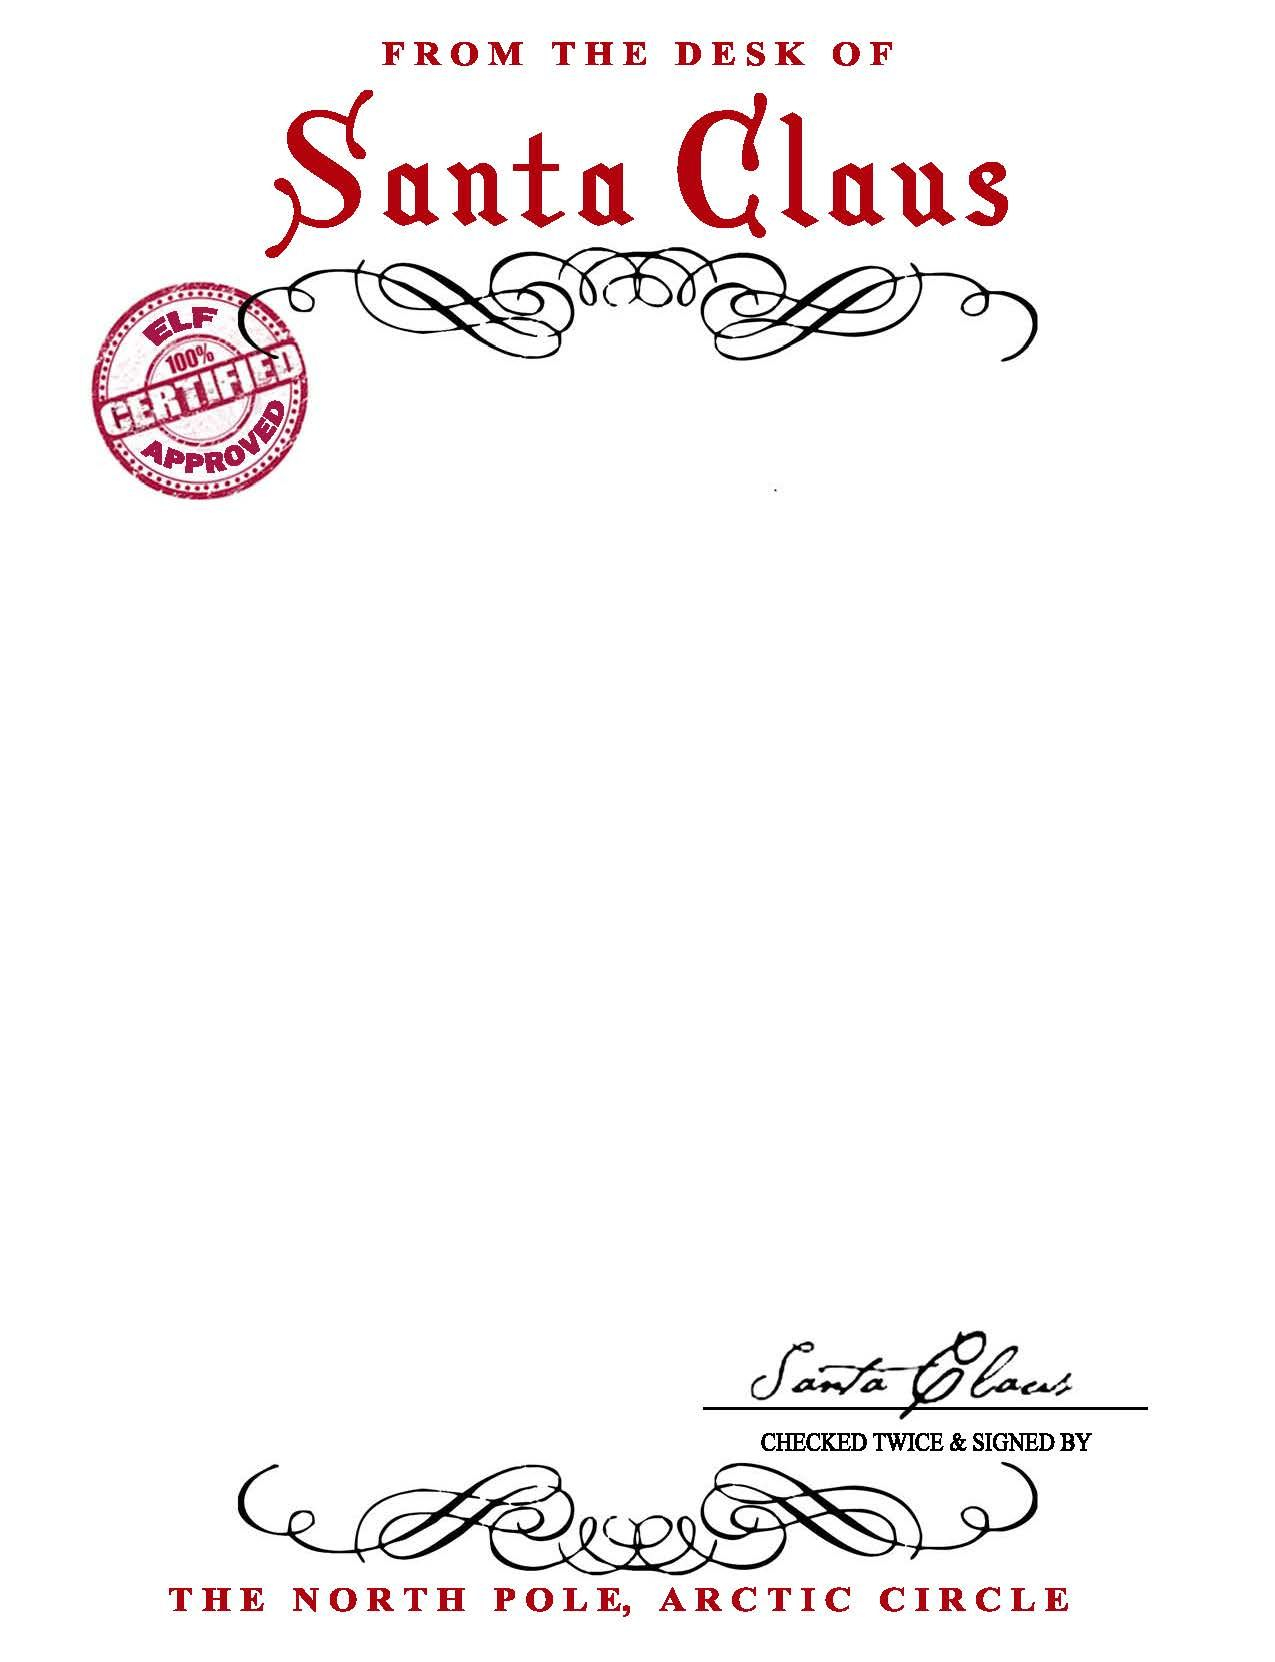 Free Letter From Santa Template Word - Santa Claus Letterhead Will Bring Lots Of Joy to Children